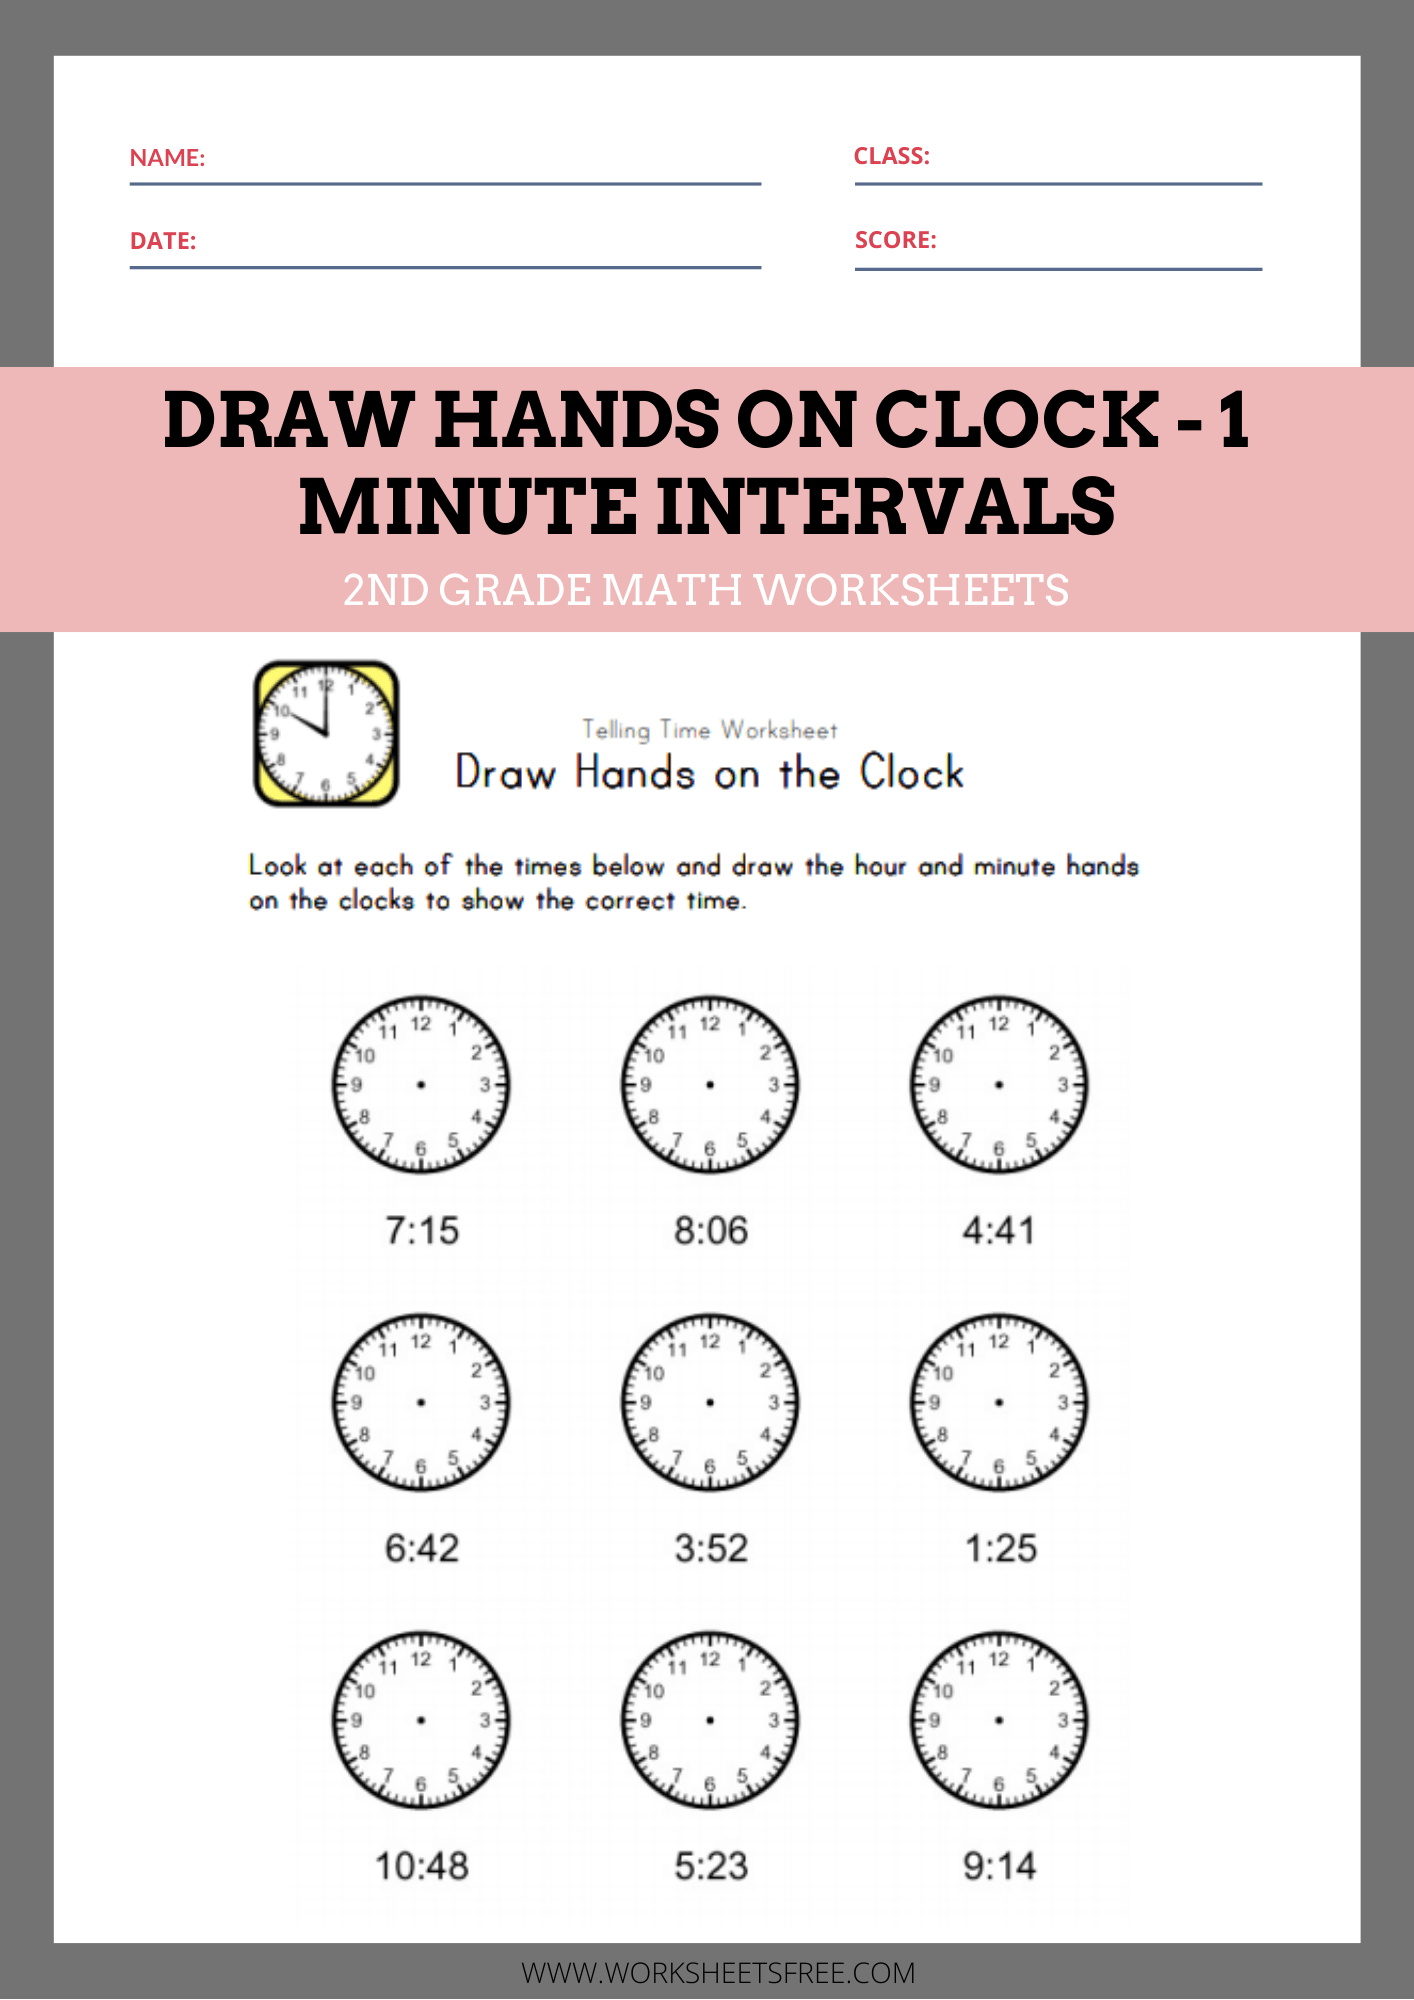 Draw Hands On Clock 1 Minute Intervals